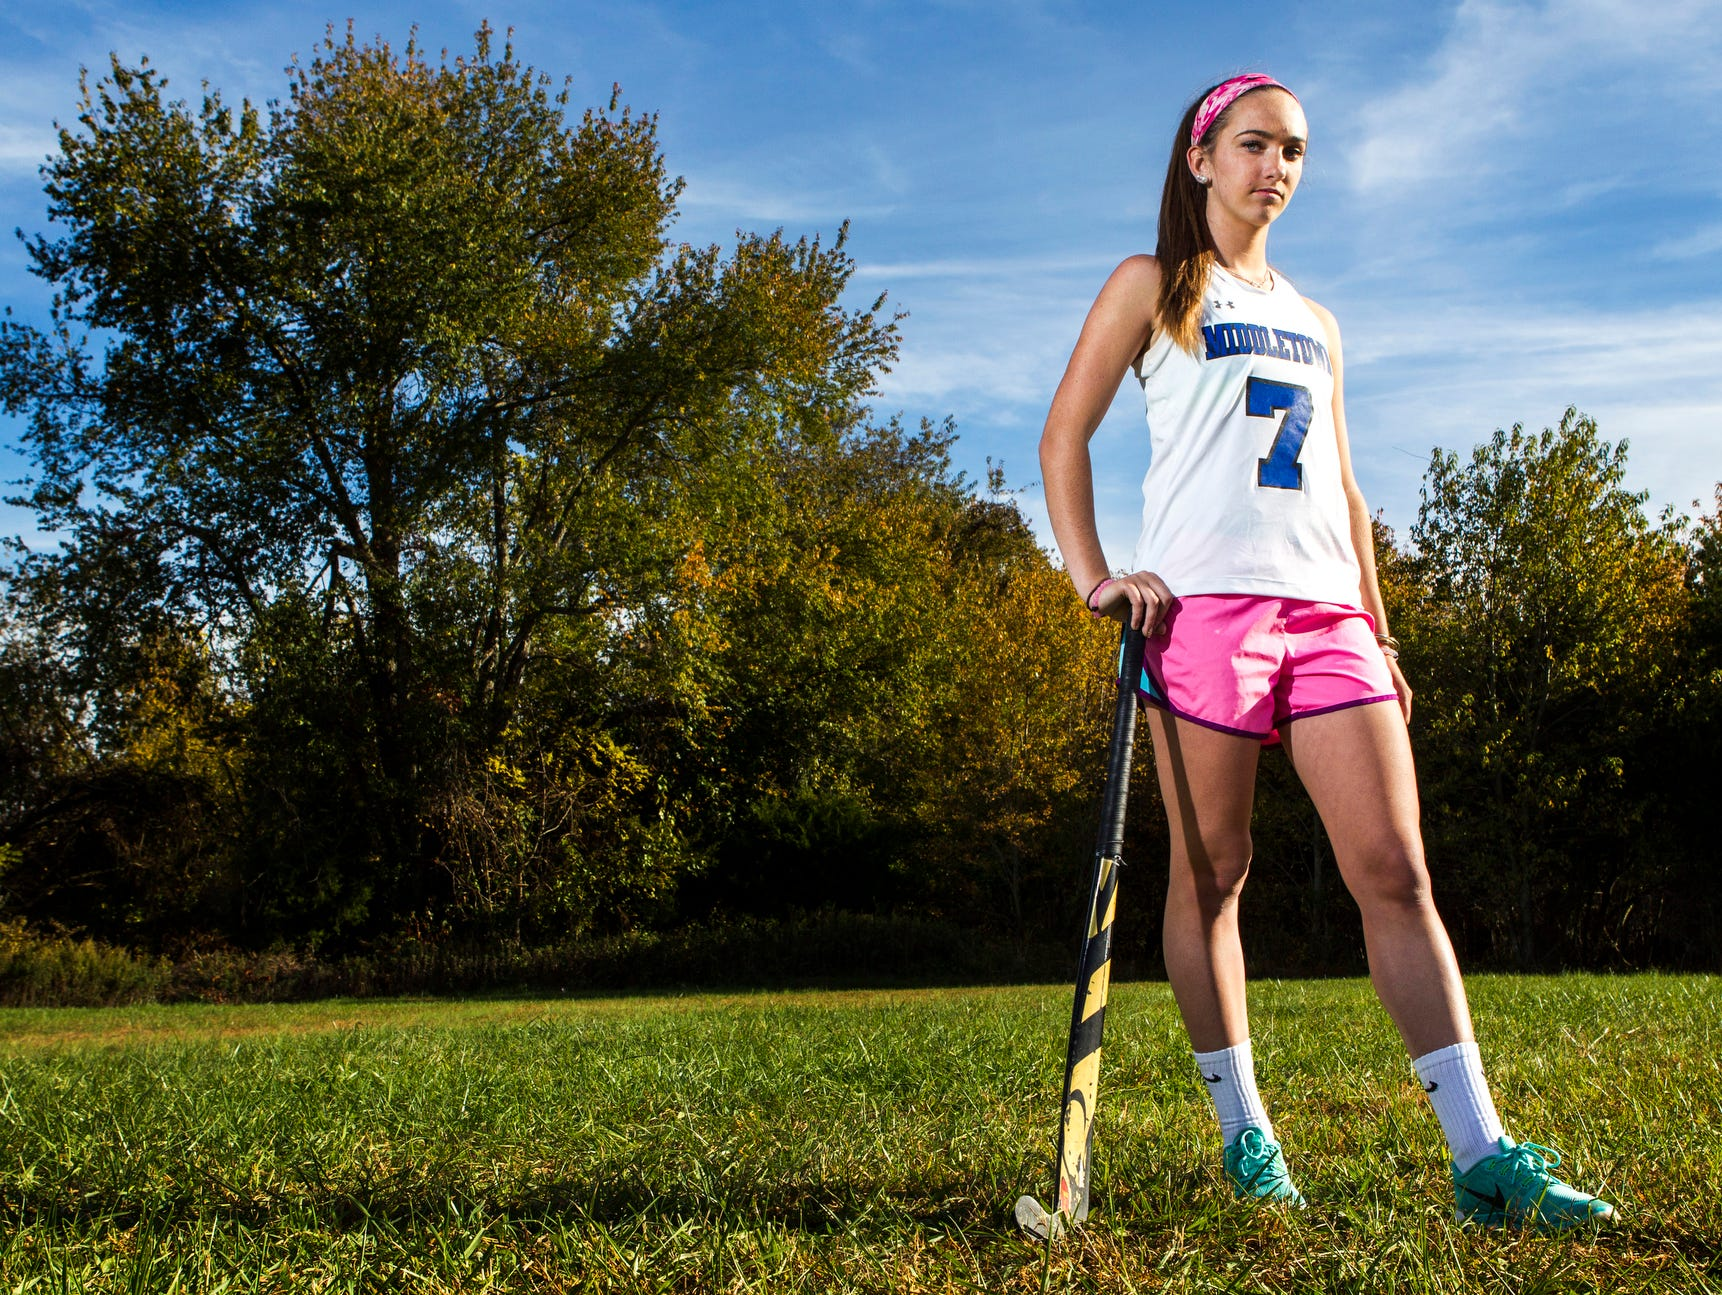 Middletown's Meghan Jolikko poses for a portrait near the playing fields at Middletown High School on Monday afternoon.